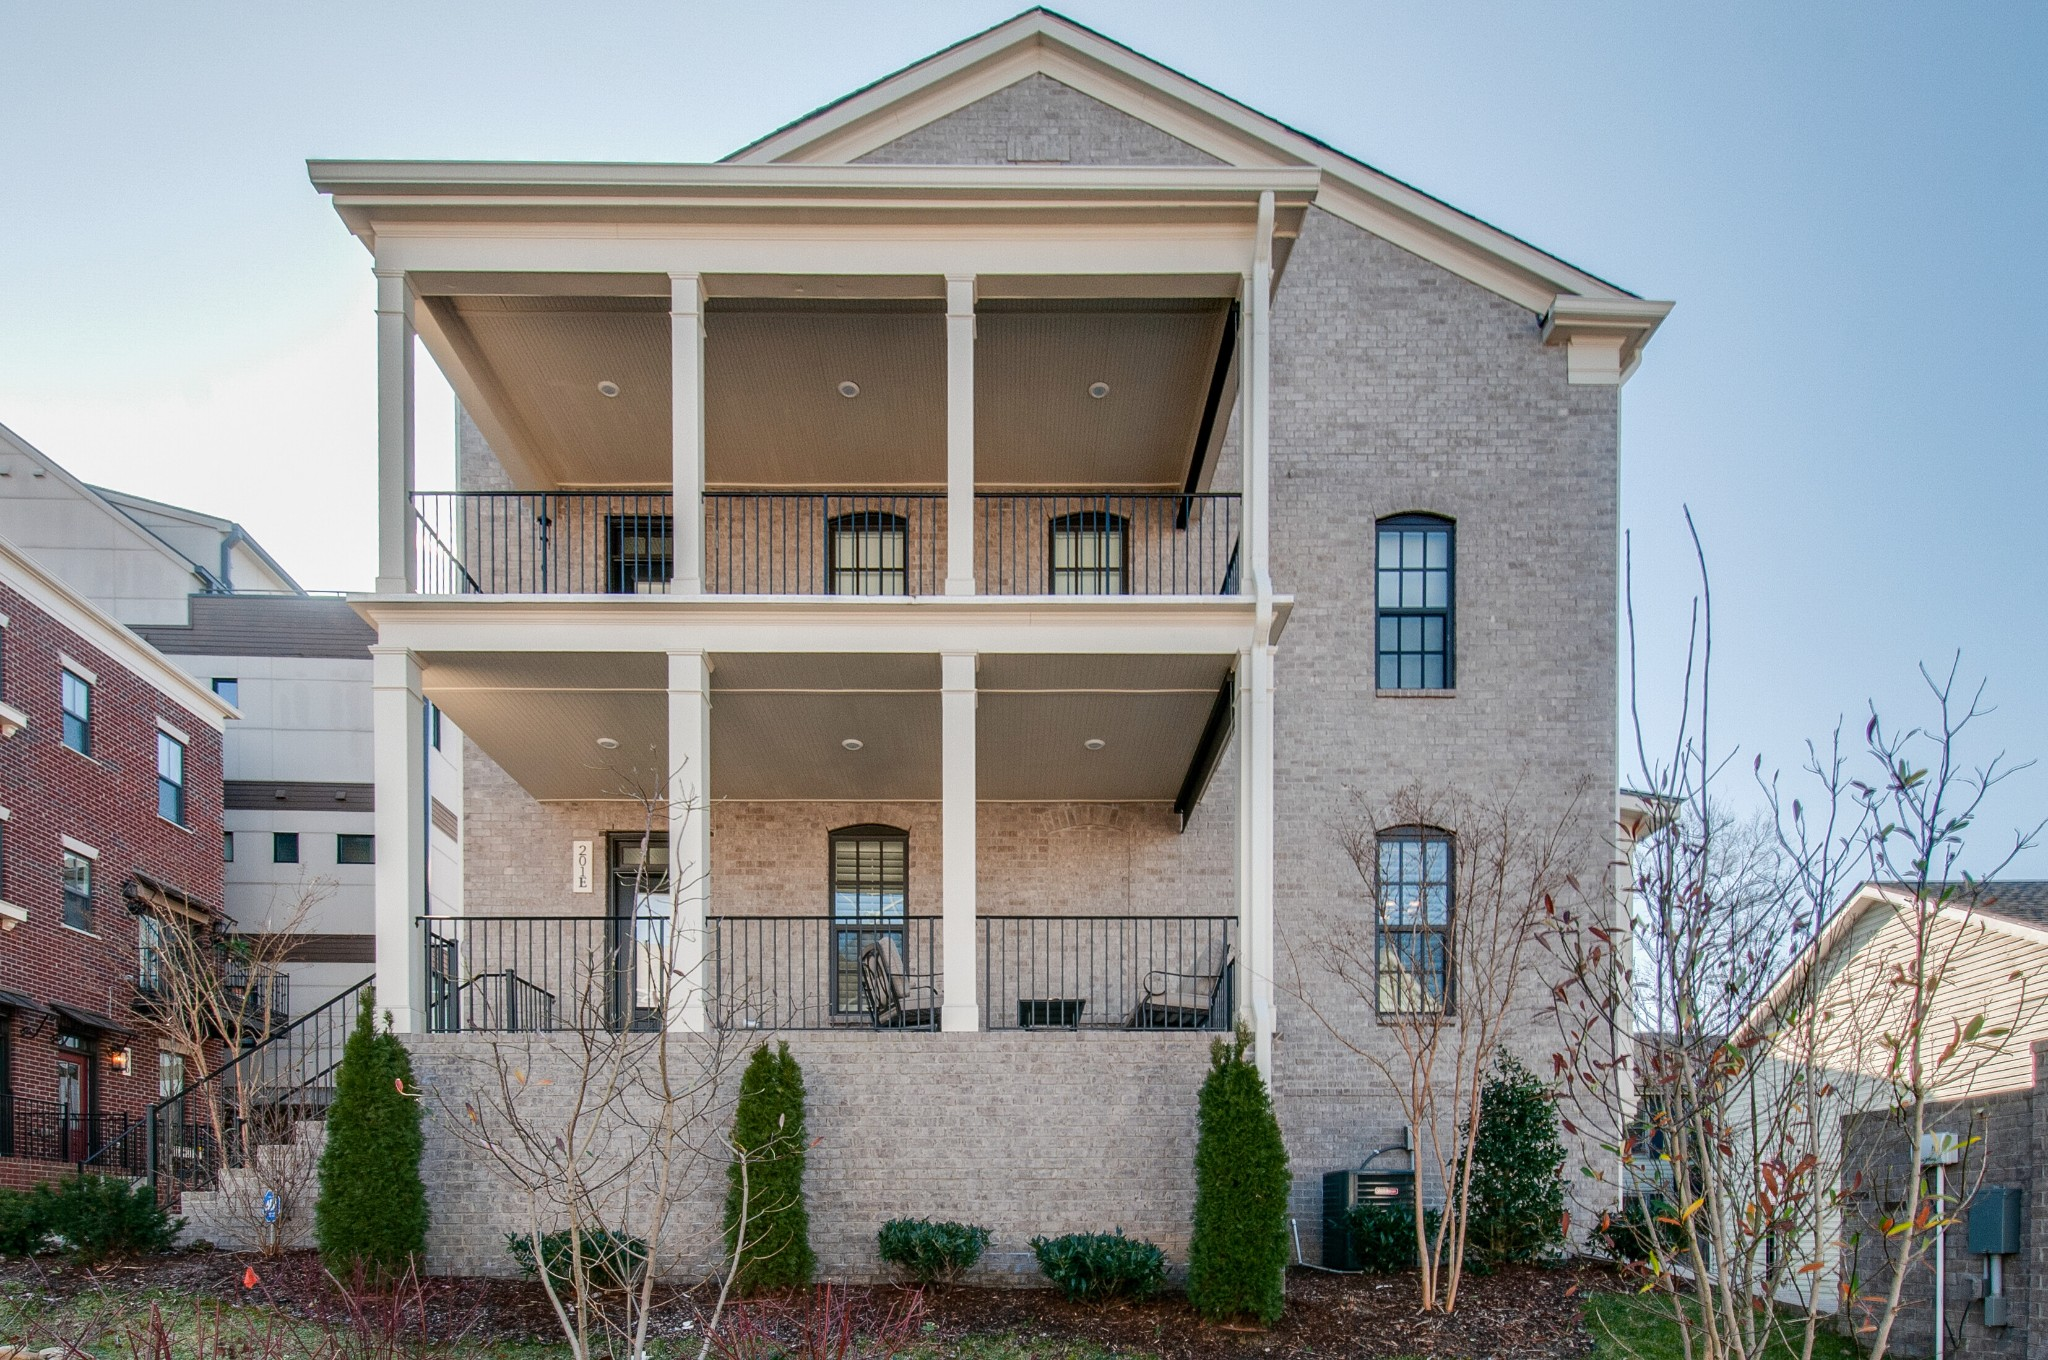 Fantastic location adjacent to Vanderbilt! This light filled end unit rowhome has an enviable, extra large owner's suite. Flex room could be a 2nd bedroom/office. The attached tandem 2 car garage has space for a Pelaton. Enjoy New Orleans style double porches year round. Low traffic street yet less than .5 mile to Centennial Dog Park. Unexpected details include real wood built in shutters & bookcases and a custom dining banquette. Low maintenance & perfect for a lock & leave lifestyle